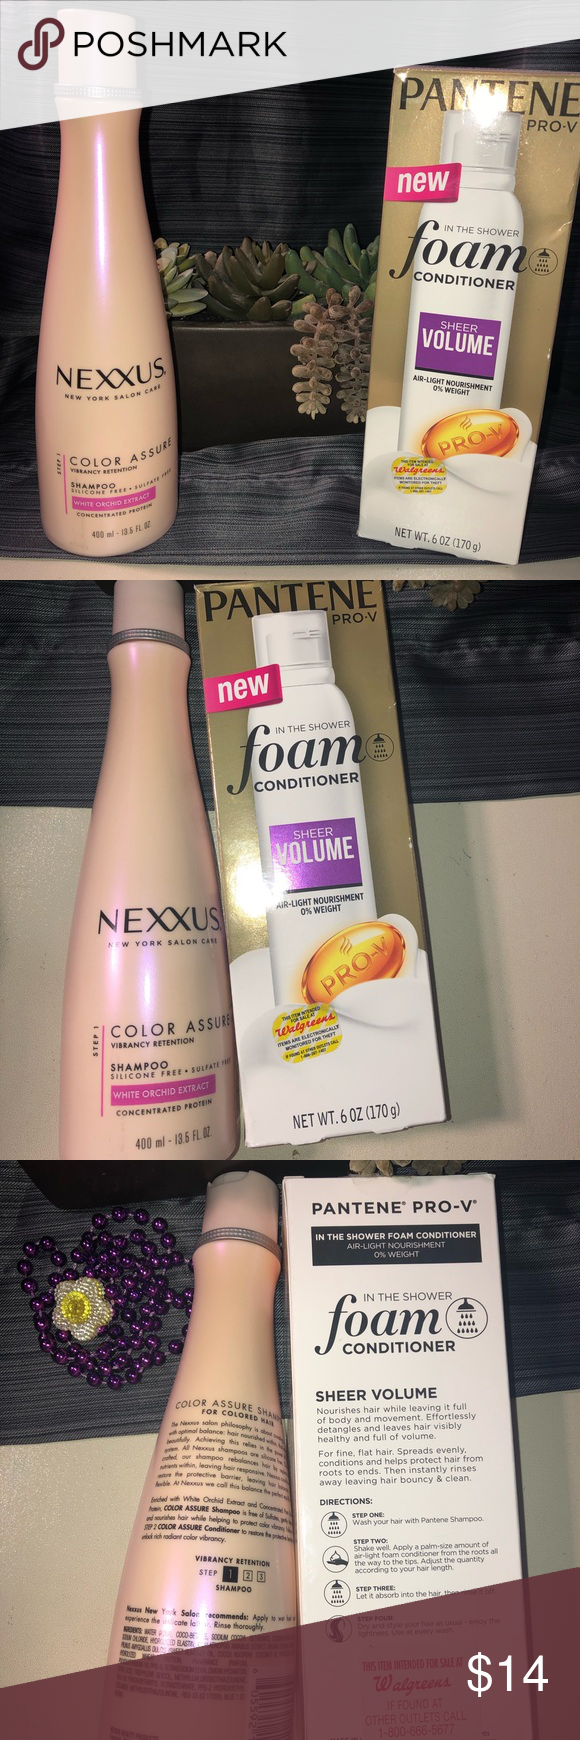 Nexxus N Pantene Get Both For The Prices Nexxus Is Size 13 5oz And The Pantene Conditioner Size 6oz No Expiration Date Pantene Nexxus Things To Sell